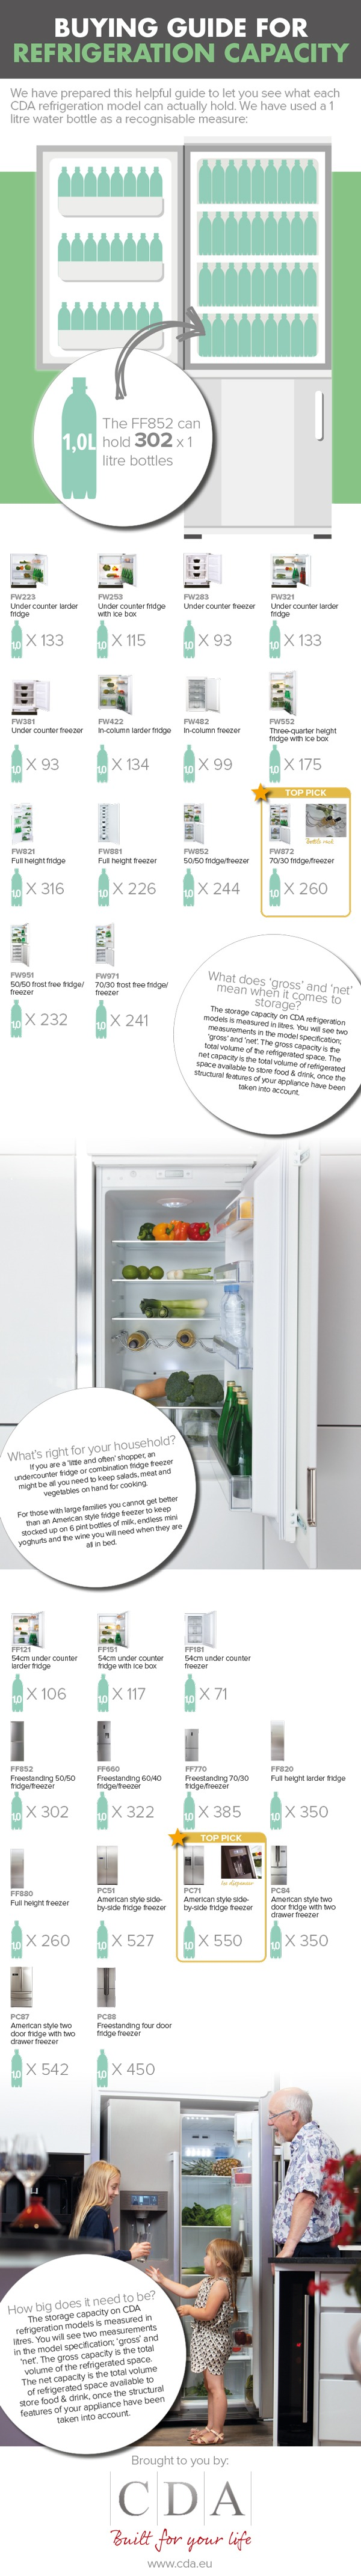 Fridge-freezer-capacity2